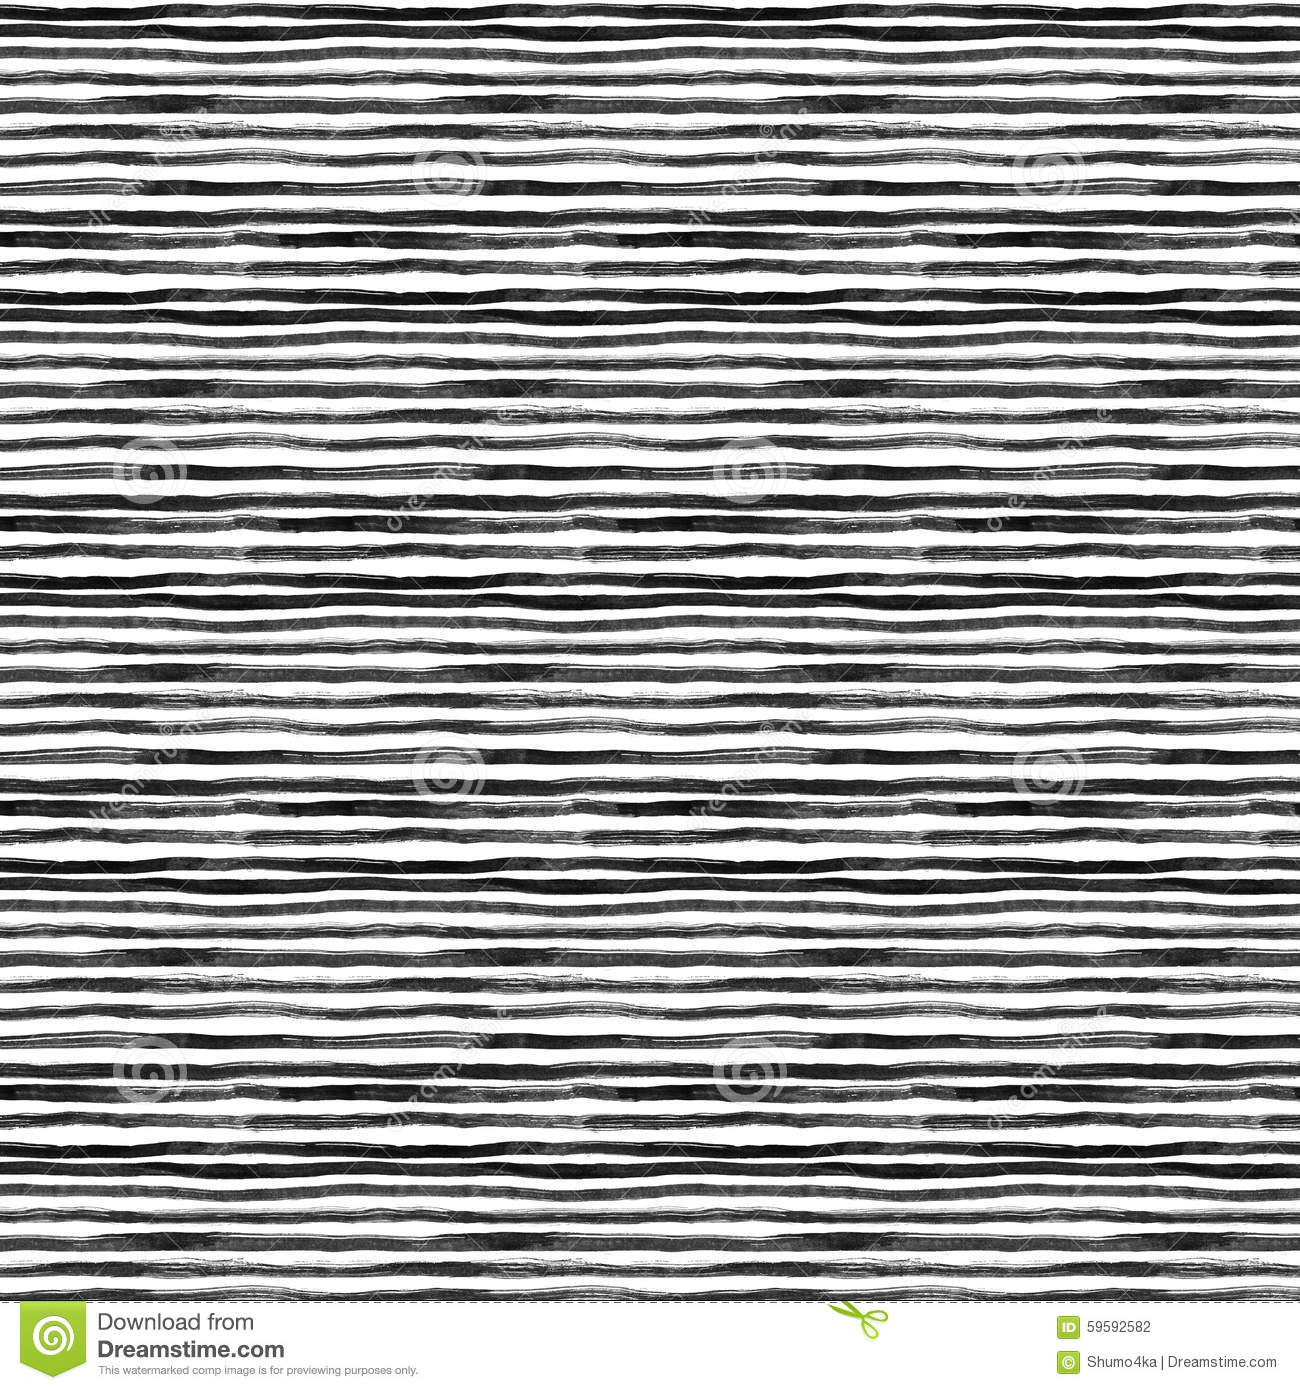 Drawing With Horizontal Lines : Black ink abstract horizontal stripes background hand